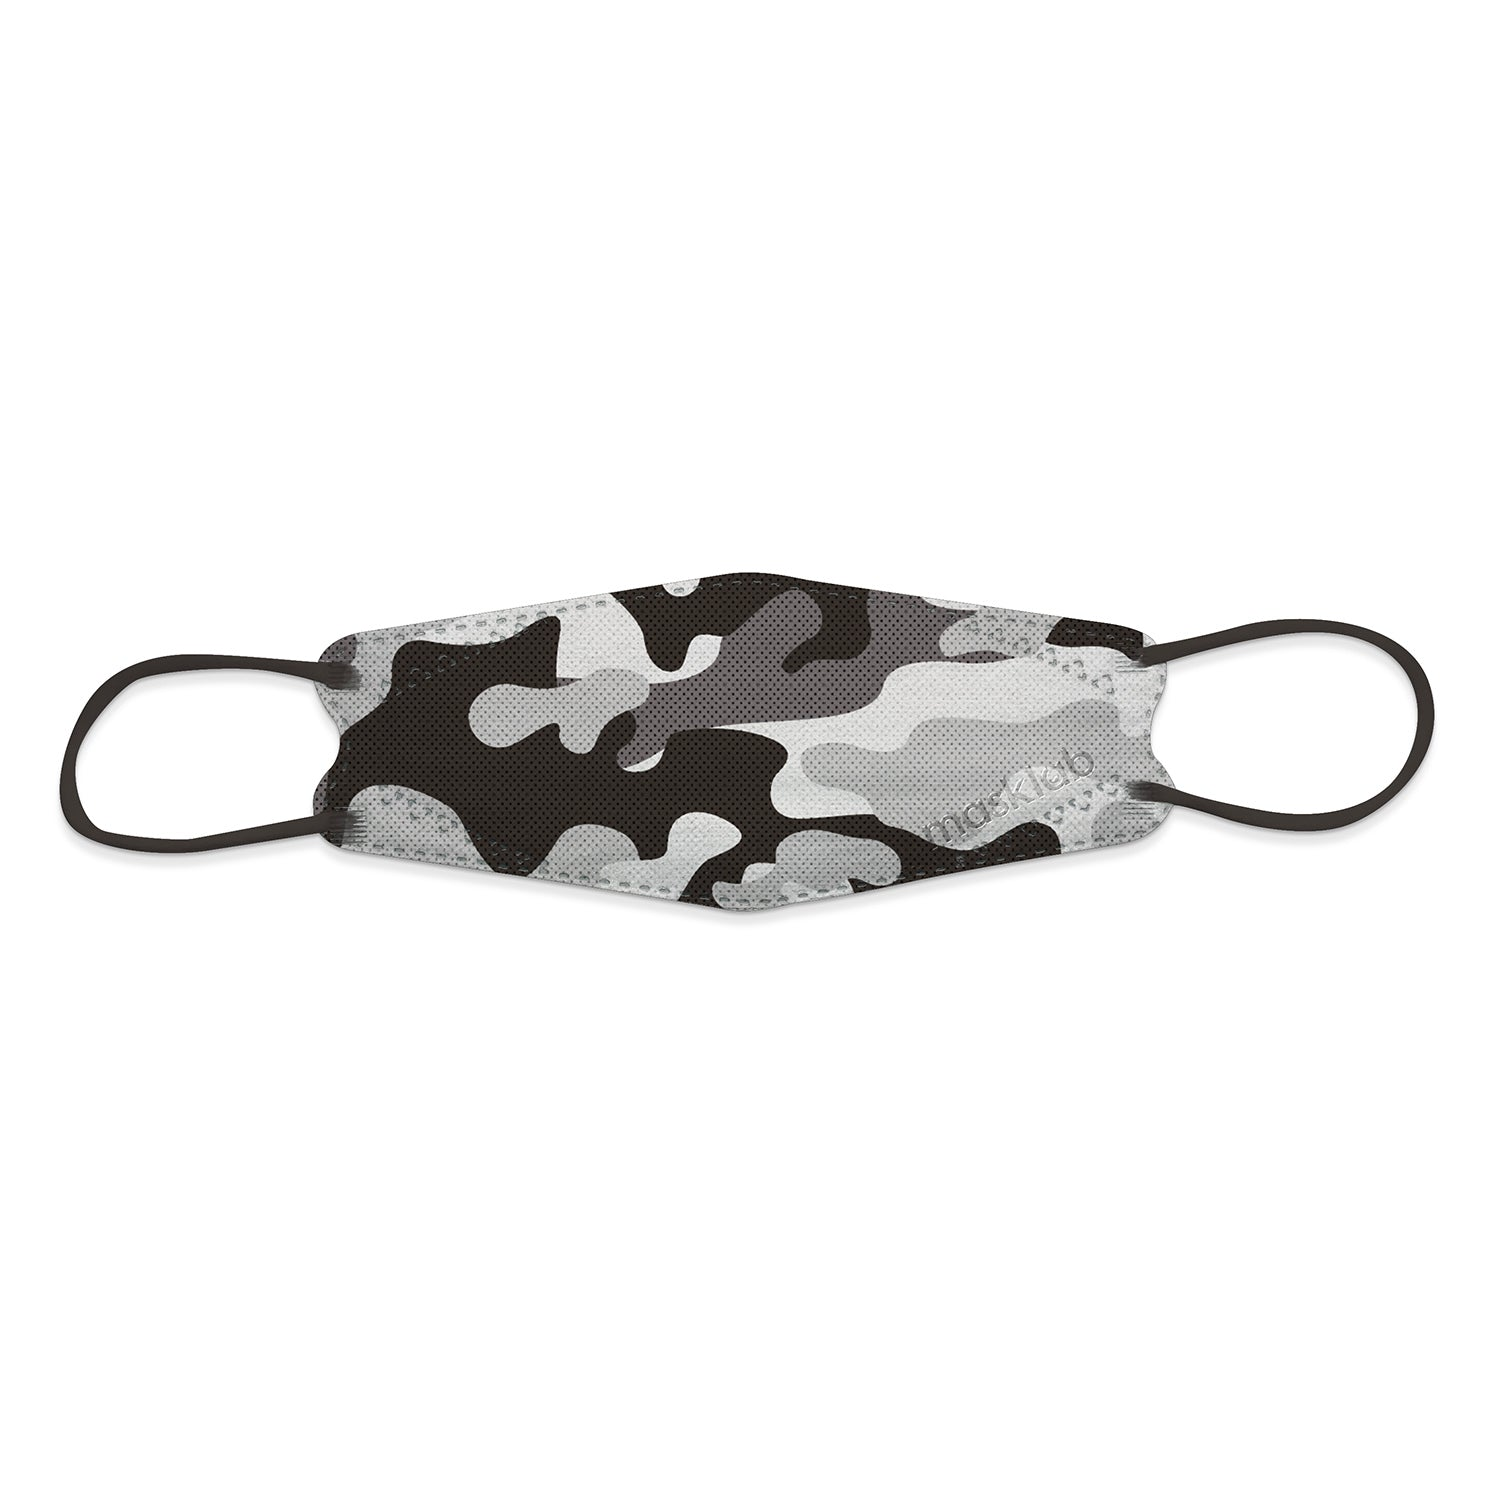 GREY CAMOUFLAGE KOREAN-STYLE RESPIRATOR (10-PACK)